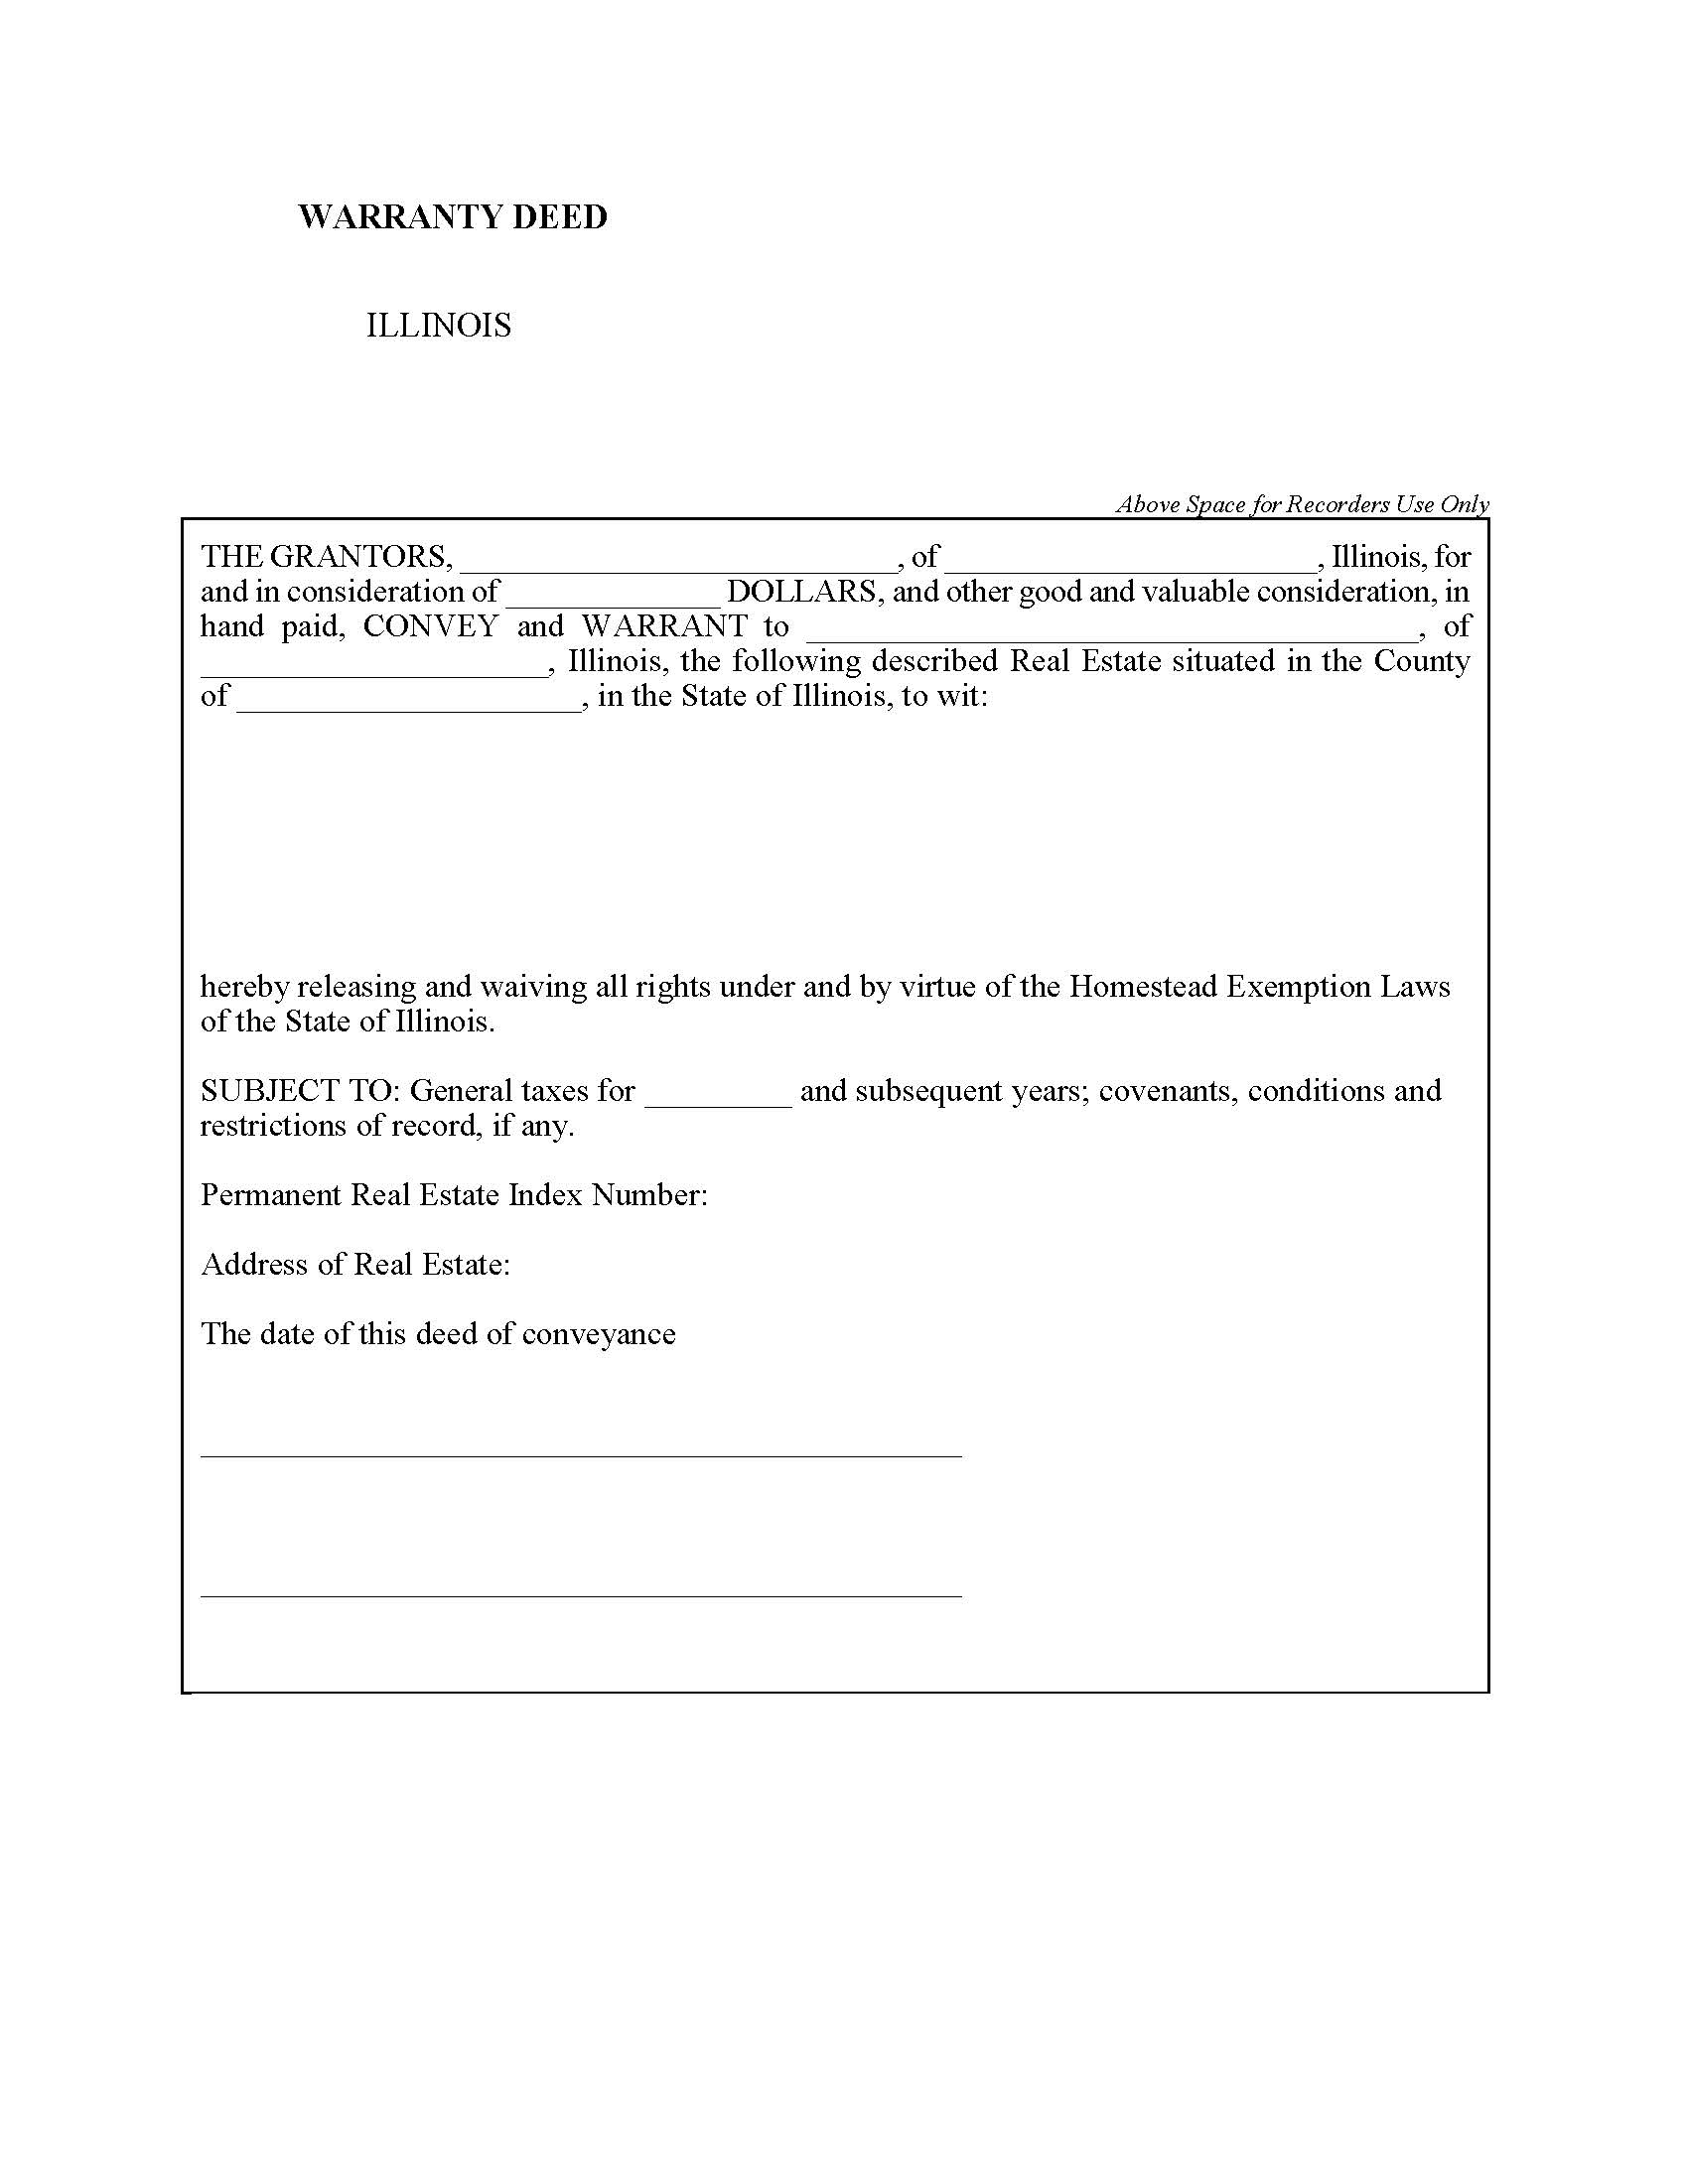 Illinois General Warranty Deed Form - Deed Forms : Deed Forms